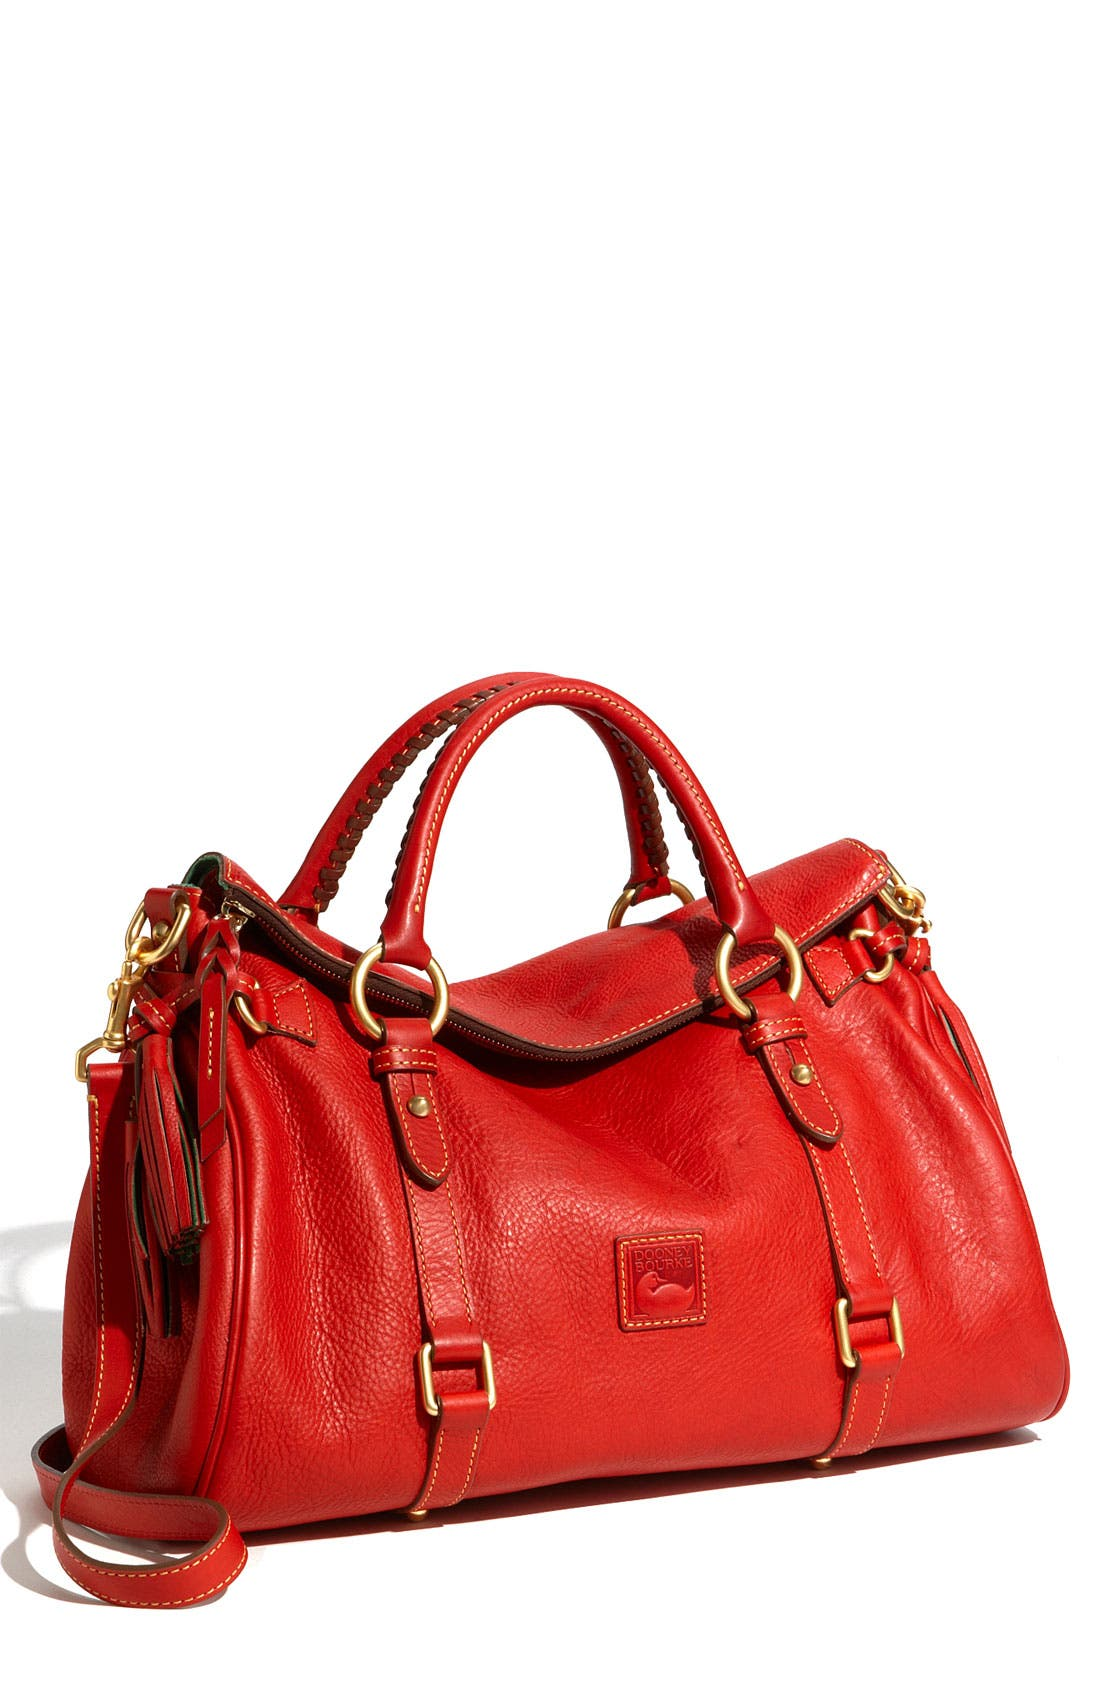 Main Image - Dooney & Bourke 'Florentine Collection' Vachetta Leather Satchel